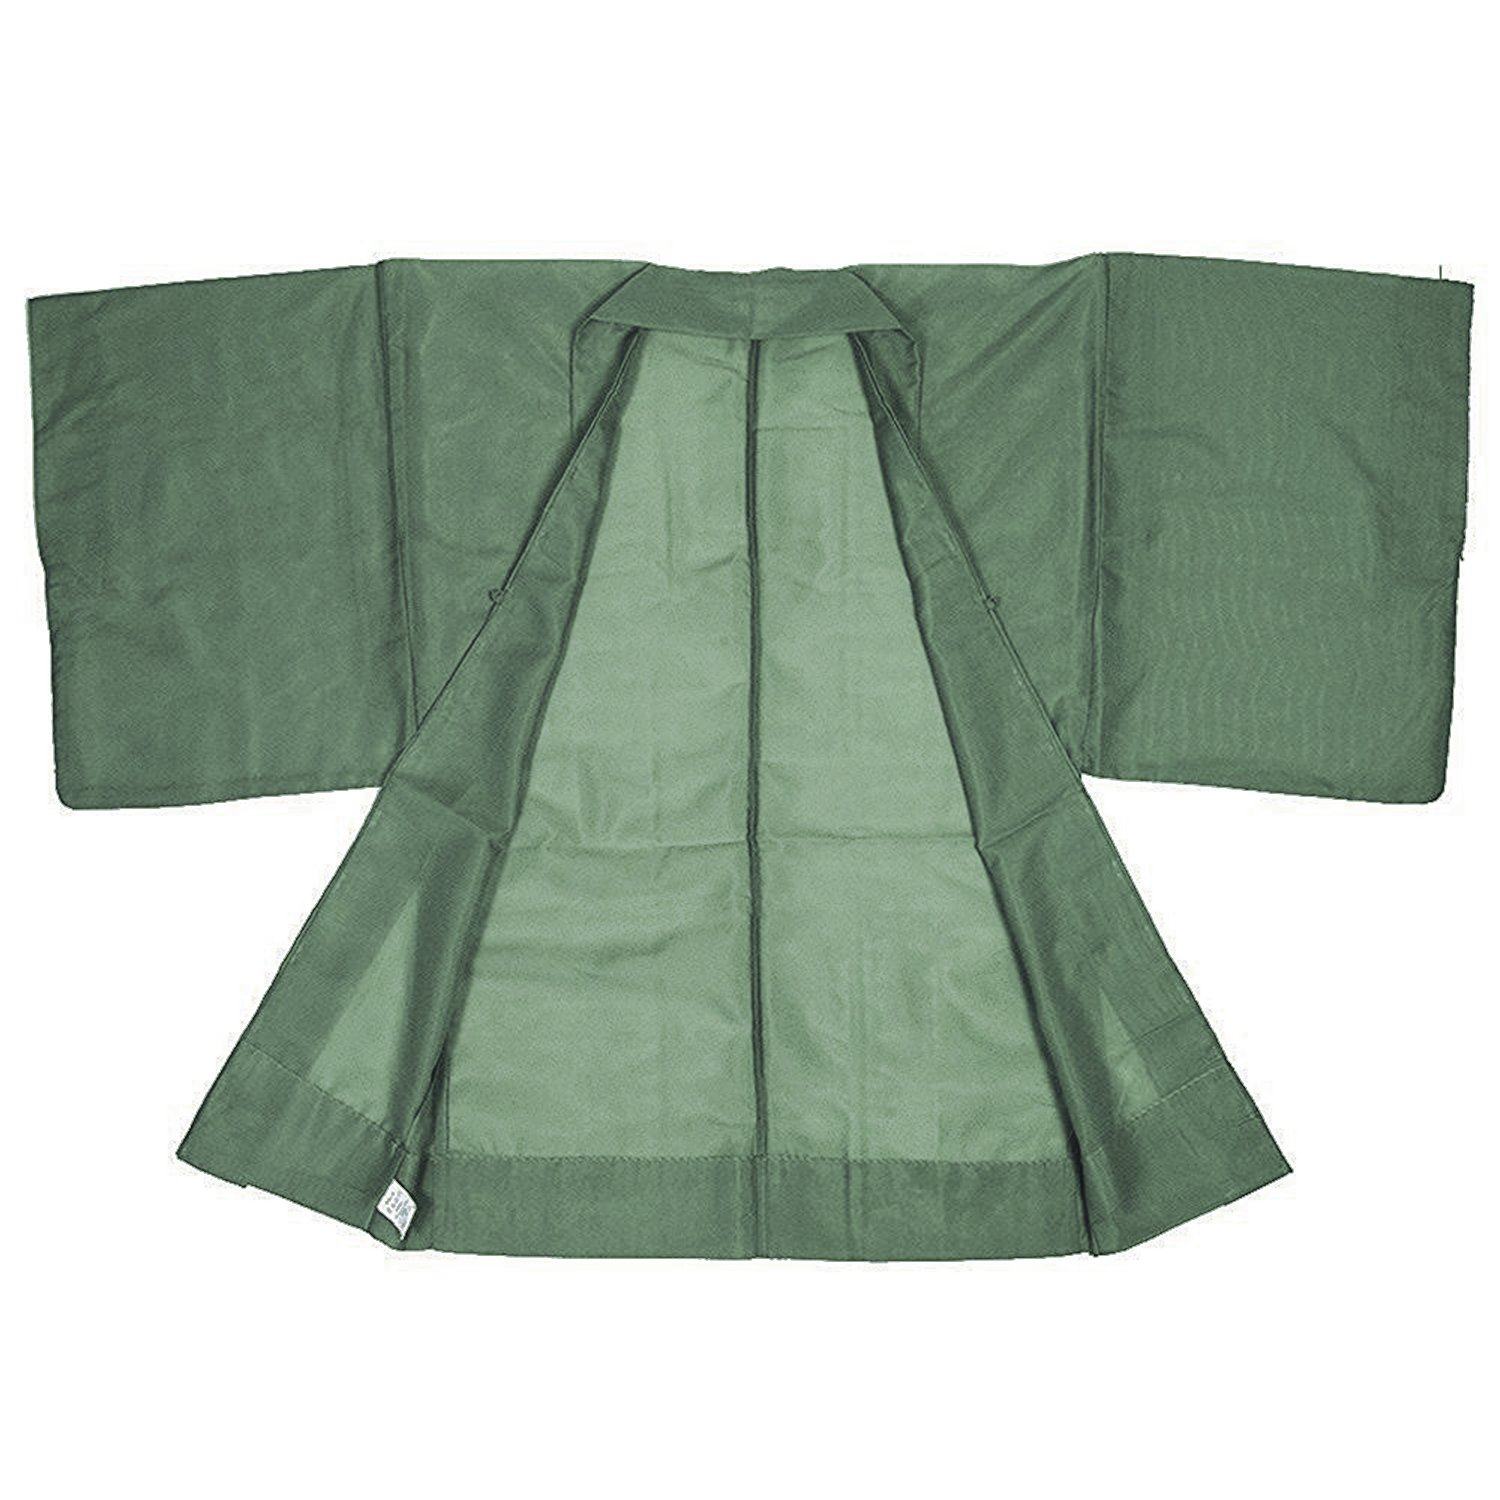 KYOETSU Men's Japanese Haori Jacket Komaro Kimono Summer Washable (XX-Large, Olive)